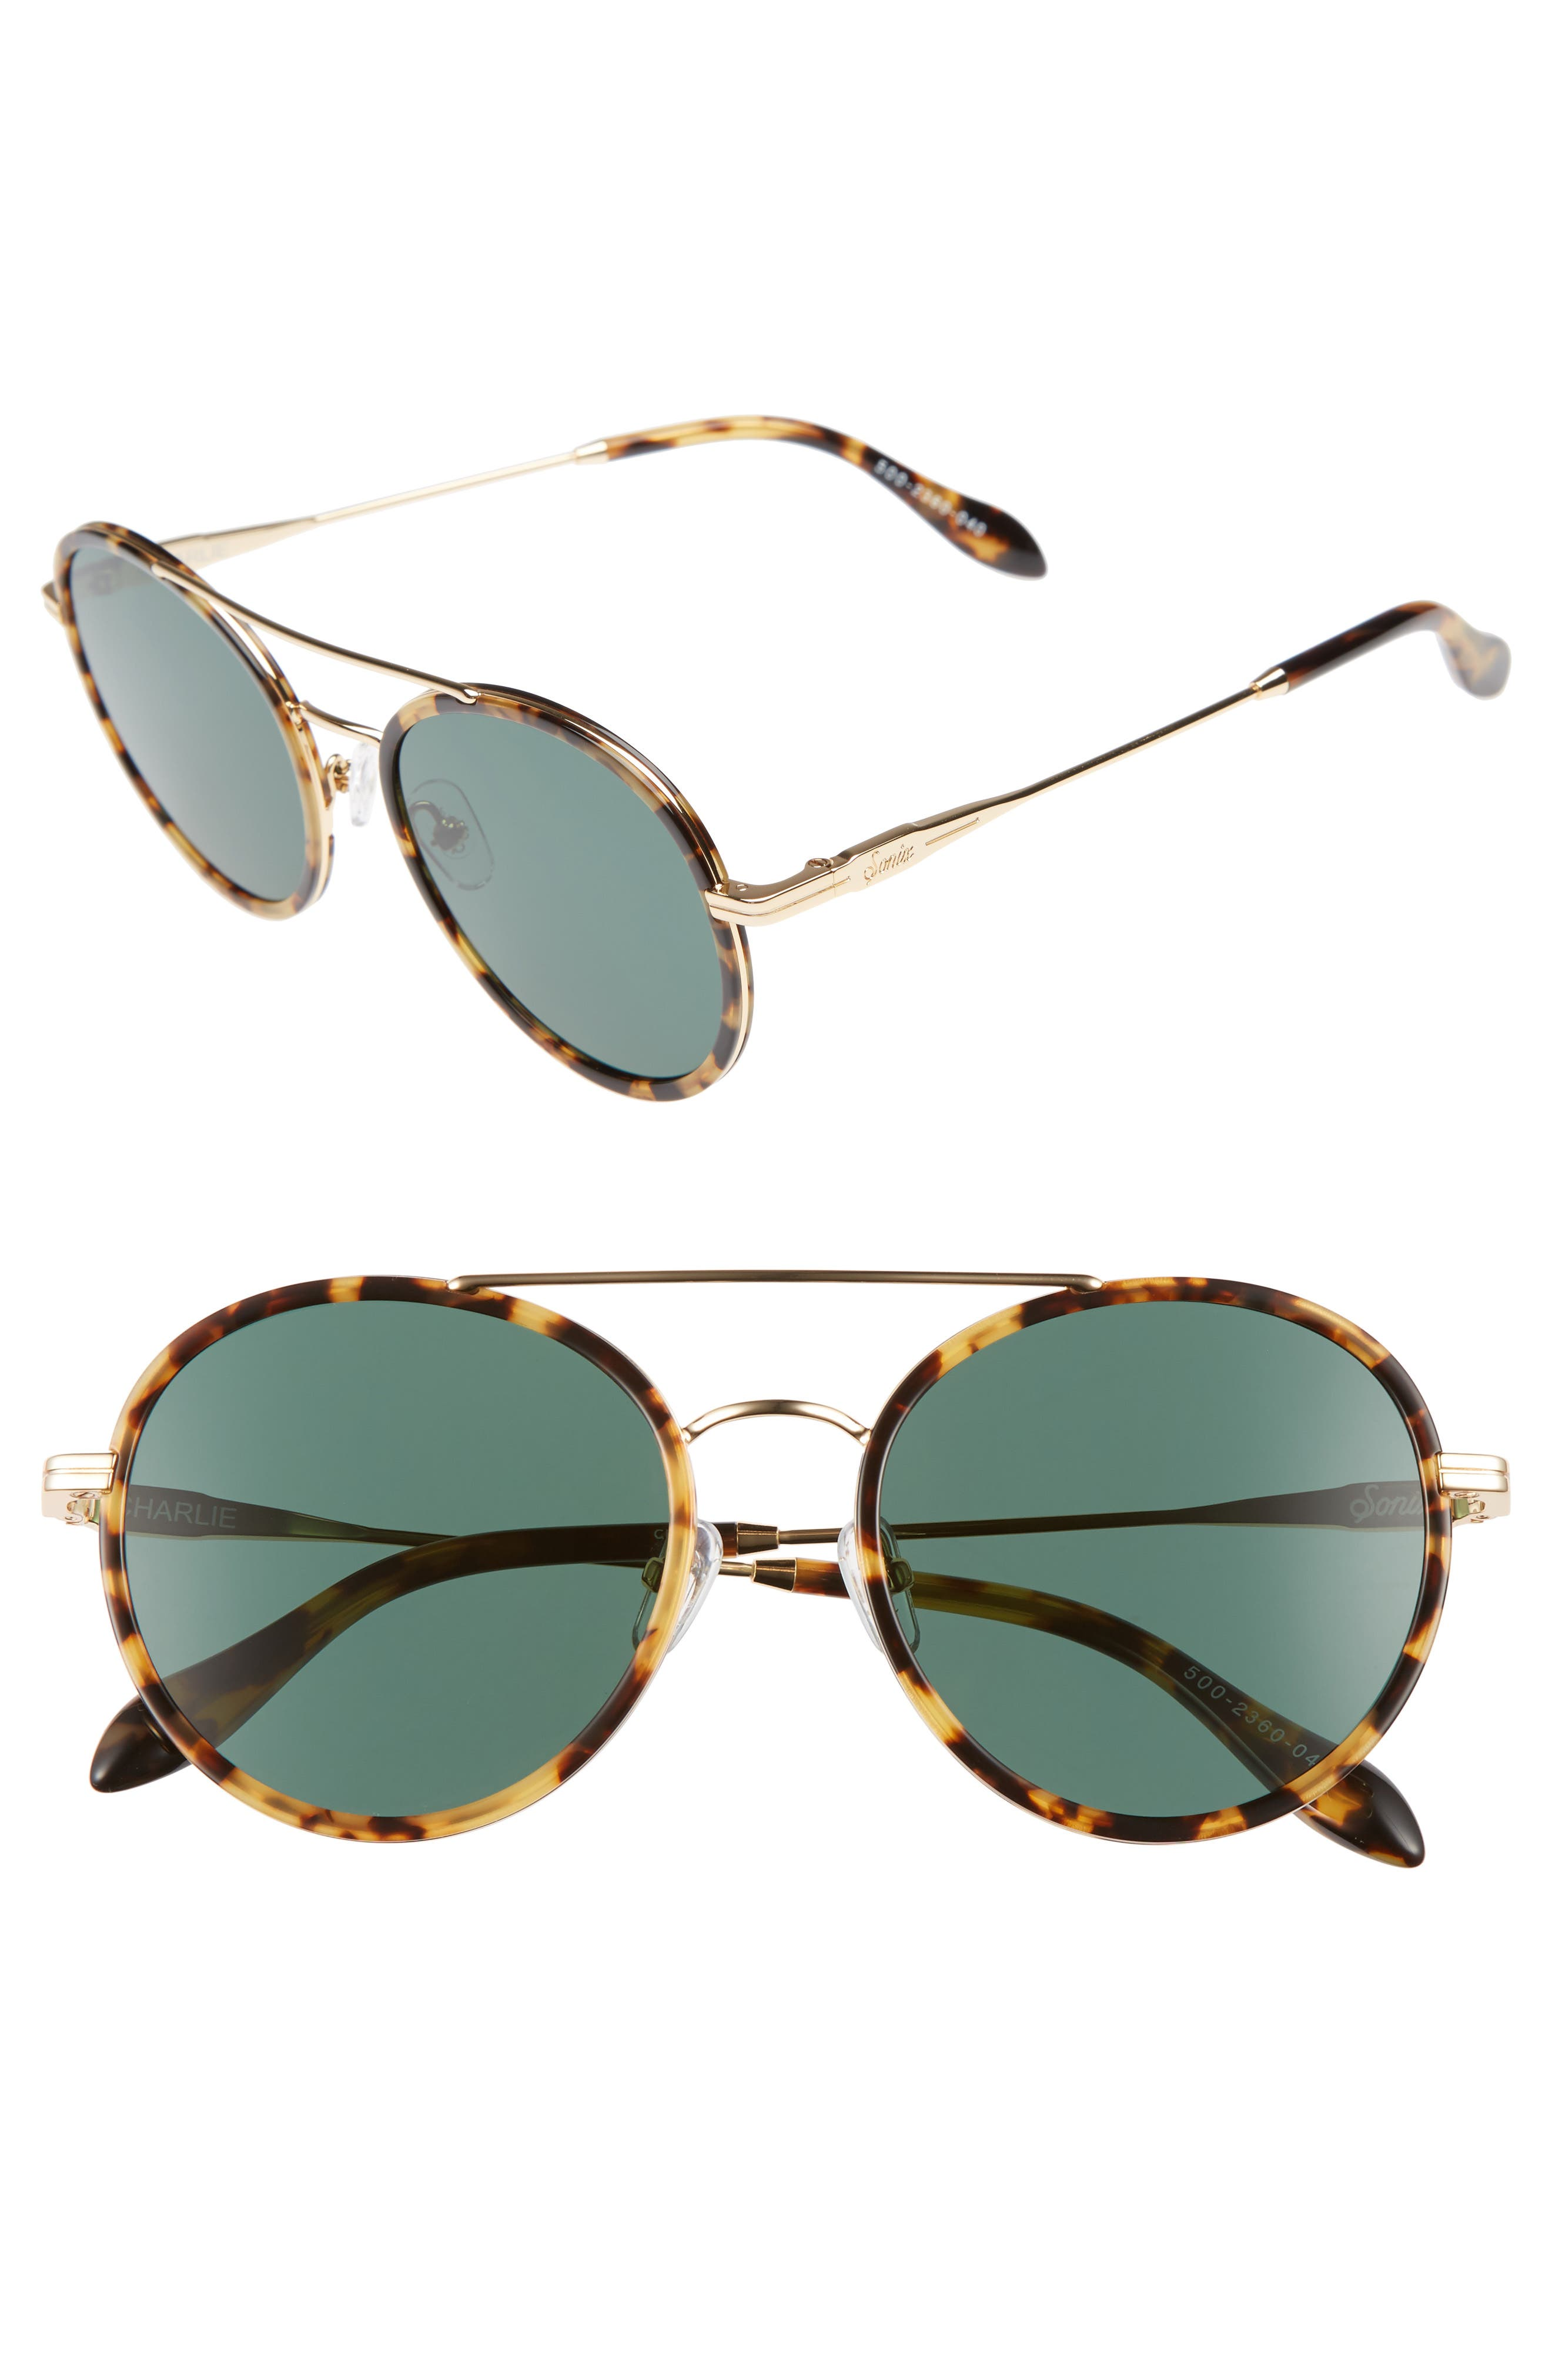 Charli 50mm Mirrored Lens Round Sunglasses,                             Main thumbnail 1, color,                             200